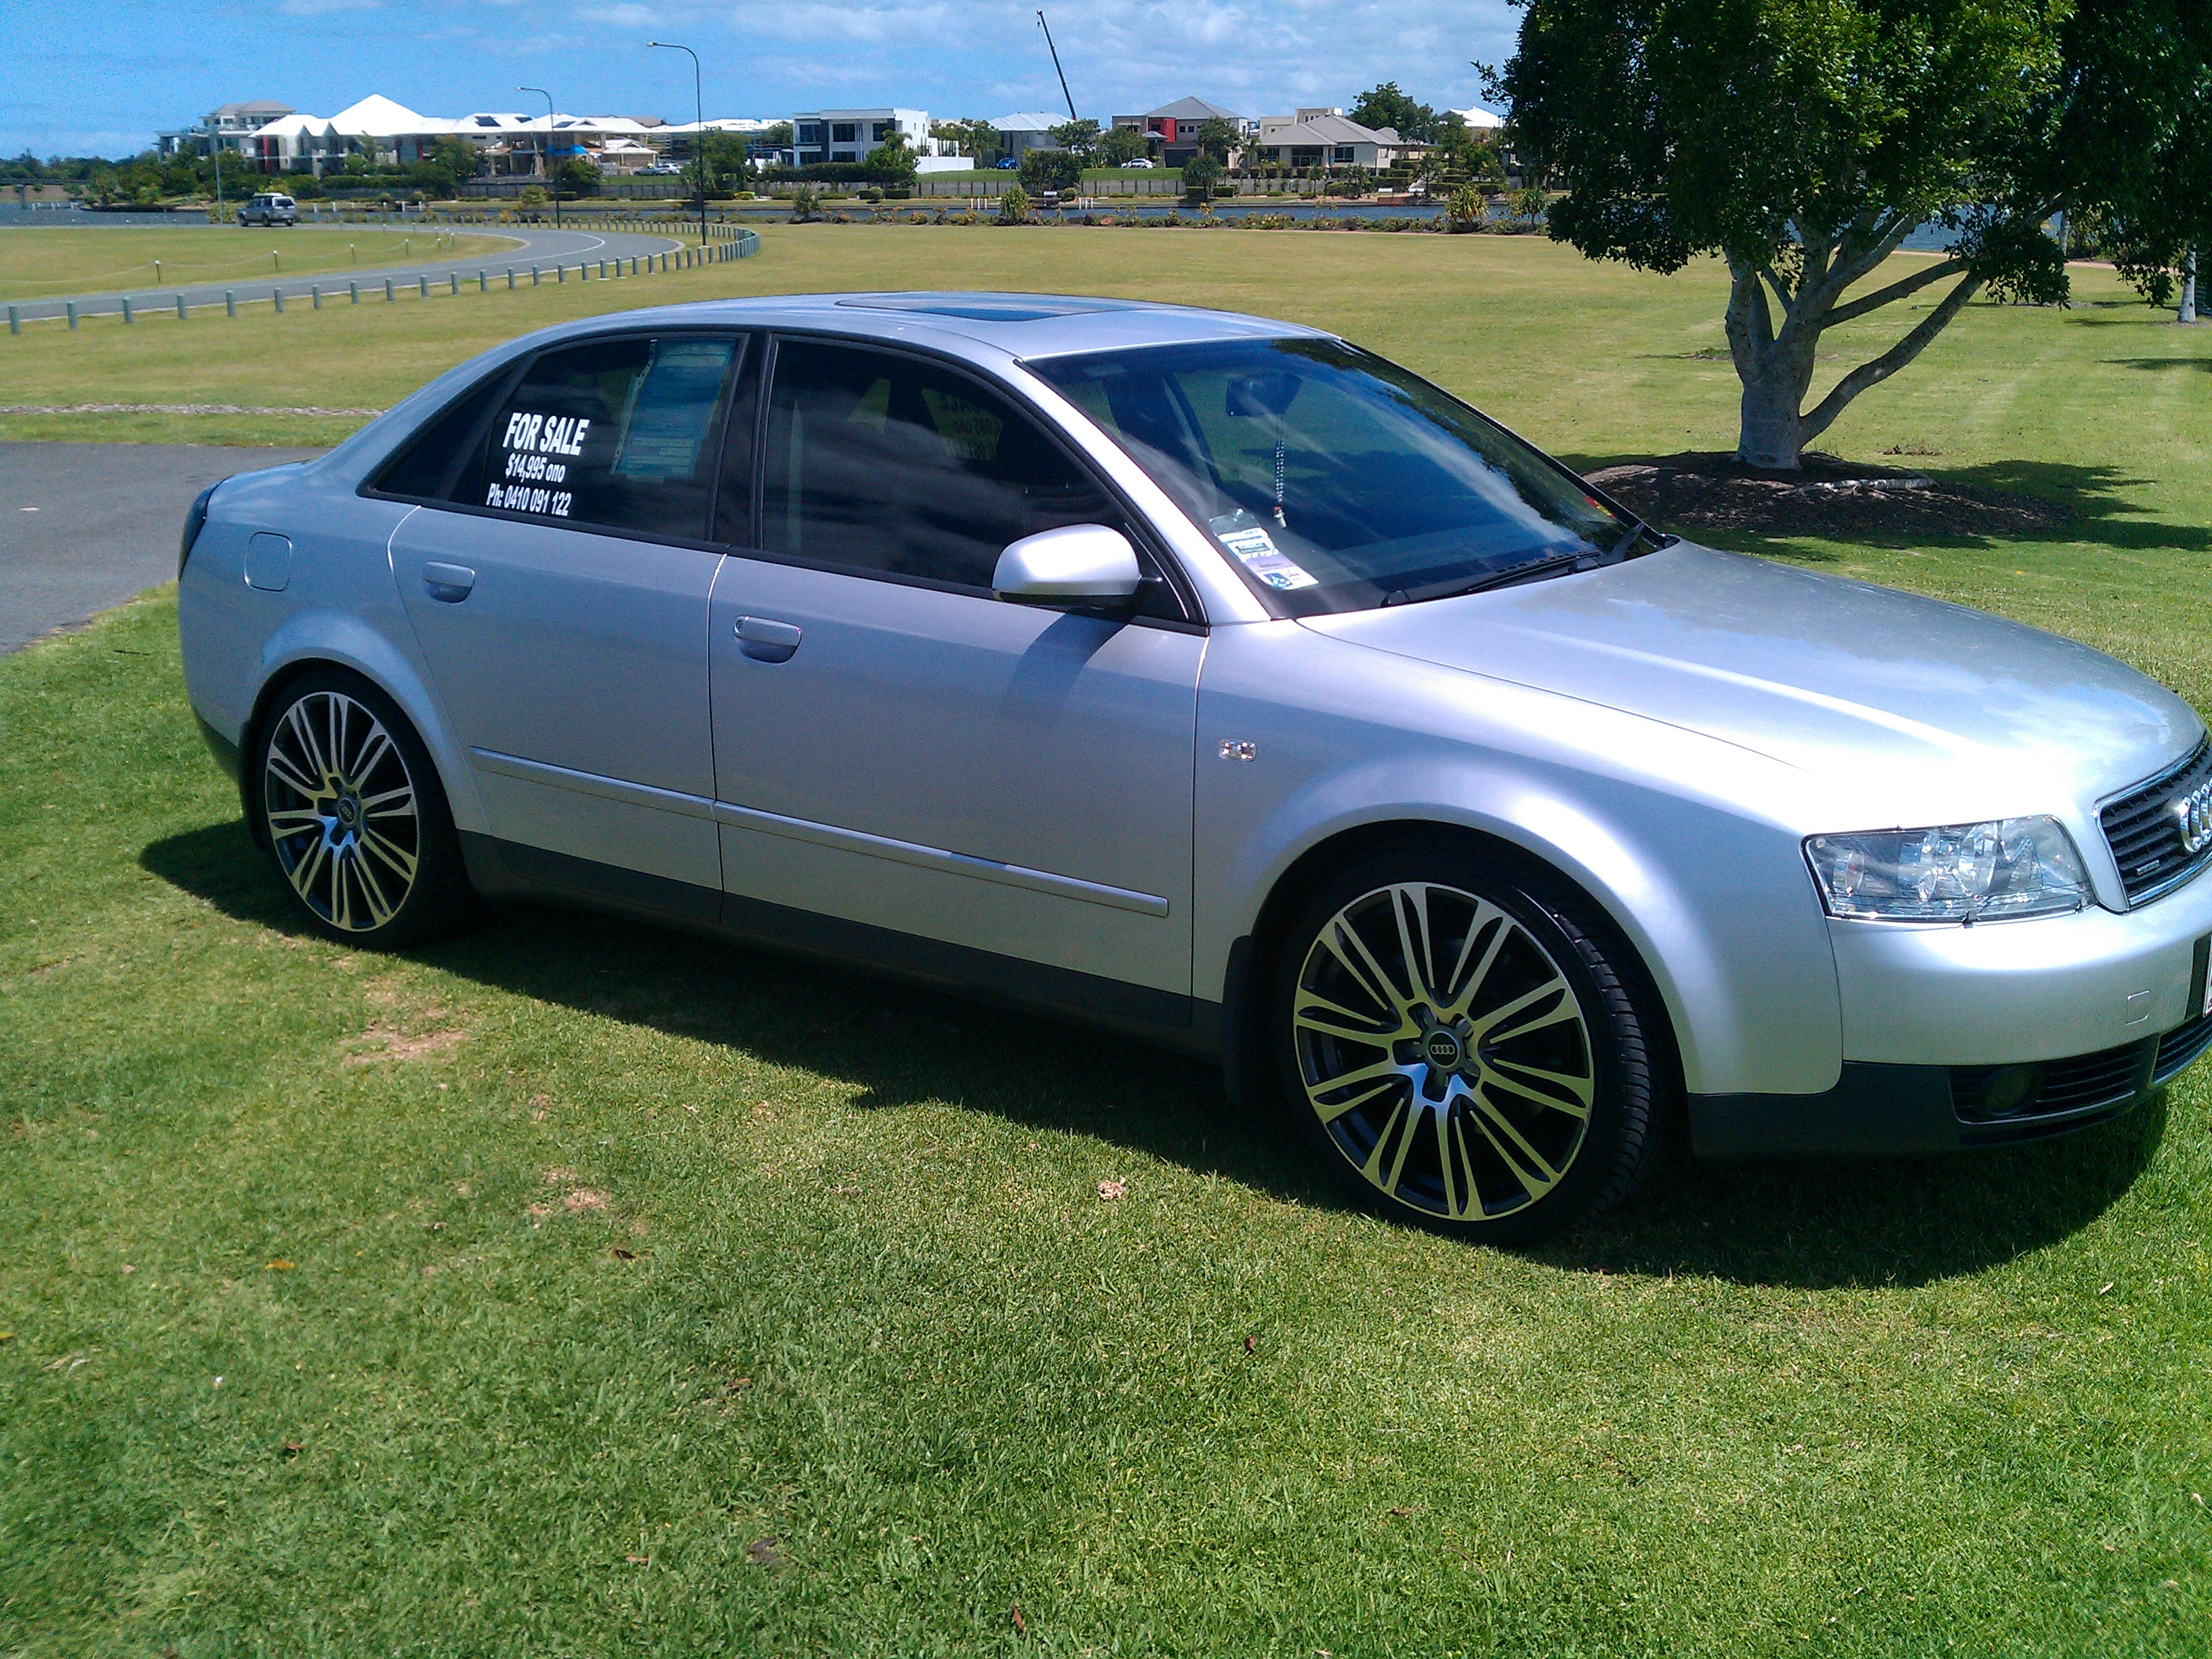 2003 audi a4 1 8 turbo quattro b6 car sales qld gold. Black Bedroom Furniture Sets. Home Design Ideas